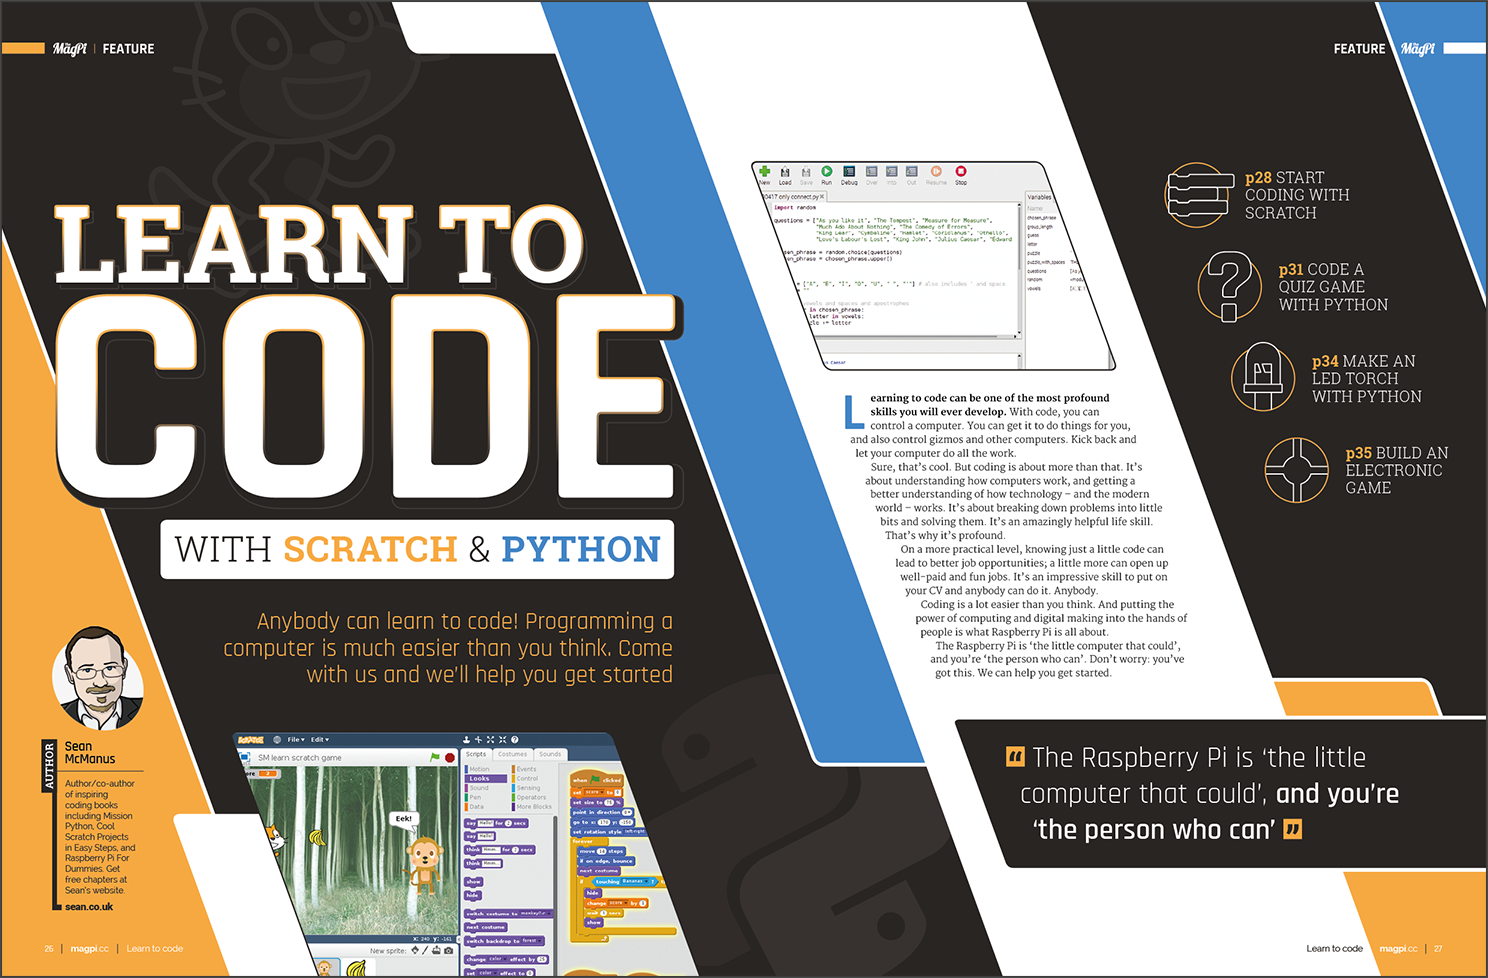 Learn to code with Scratch and Python